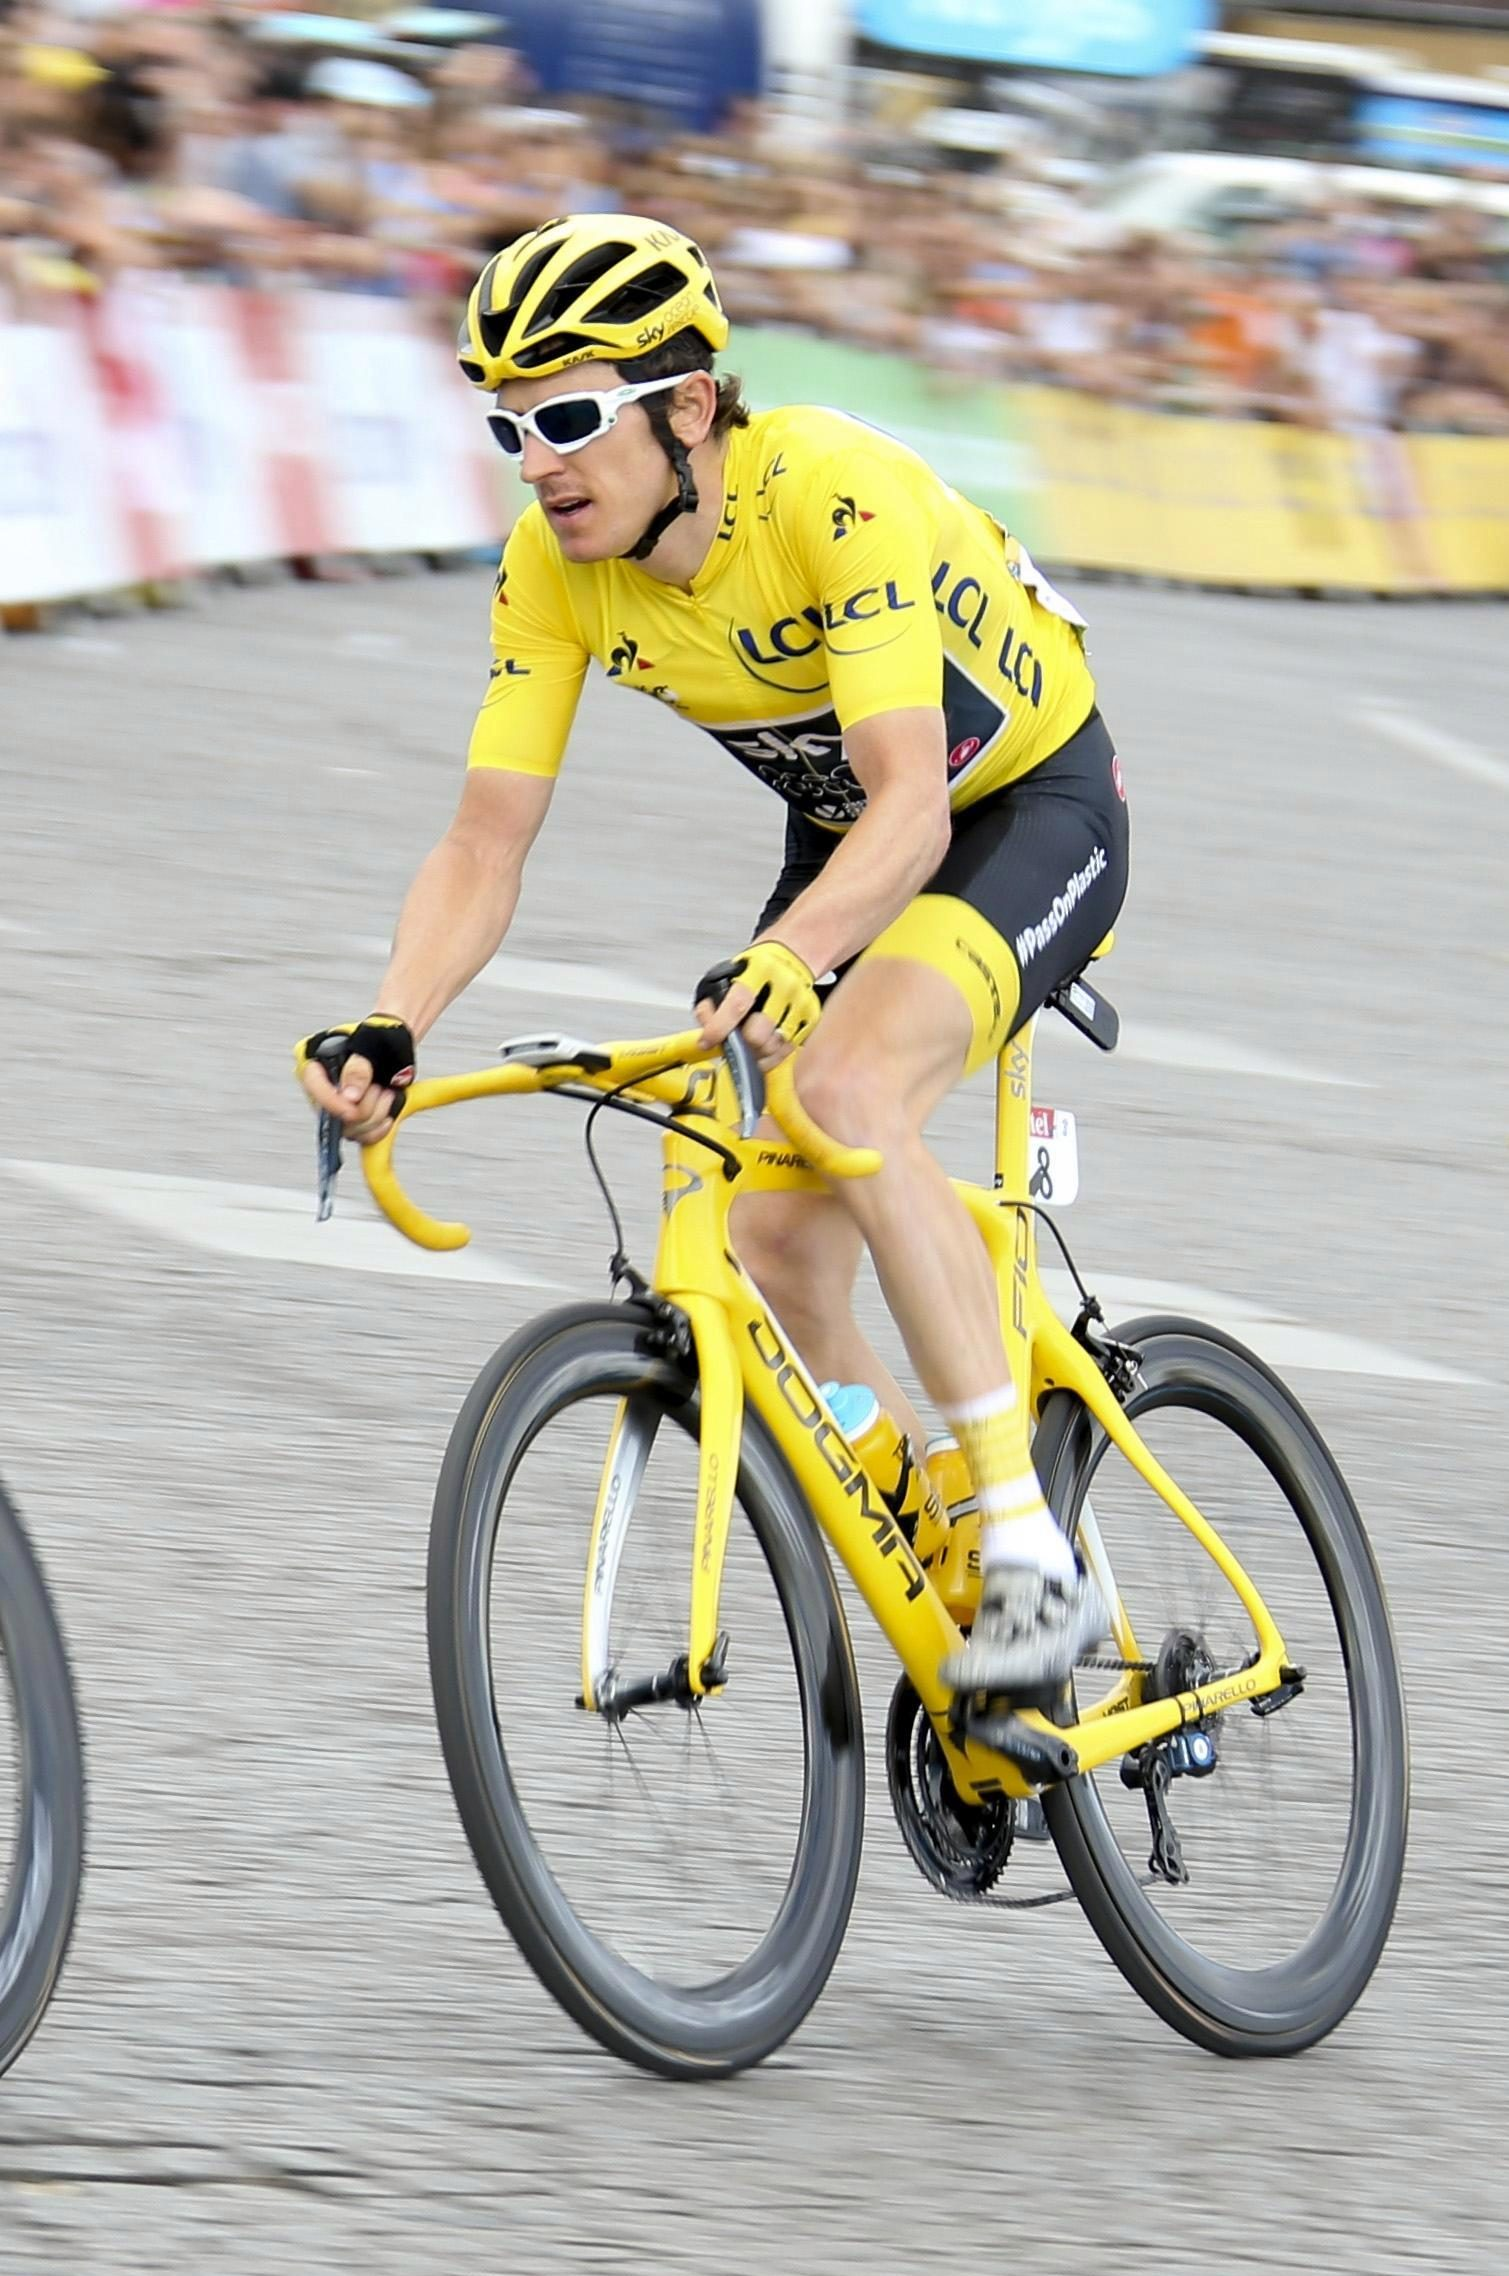 Geraint Thomas says there is 'no reason not to' wear a helmet while cycling